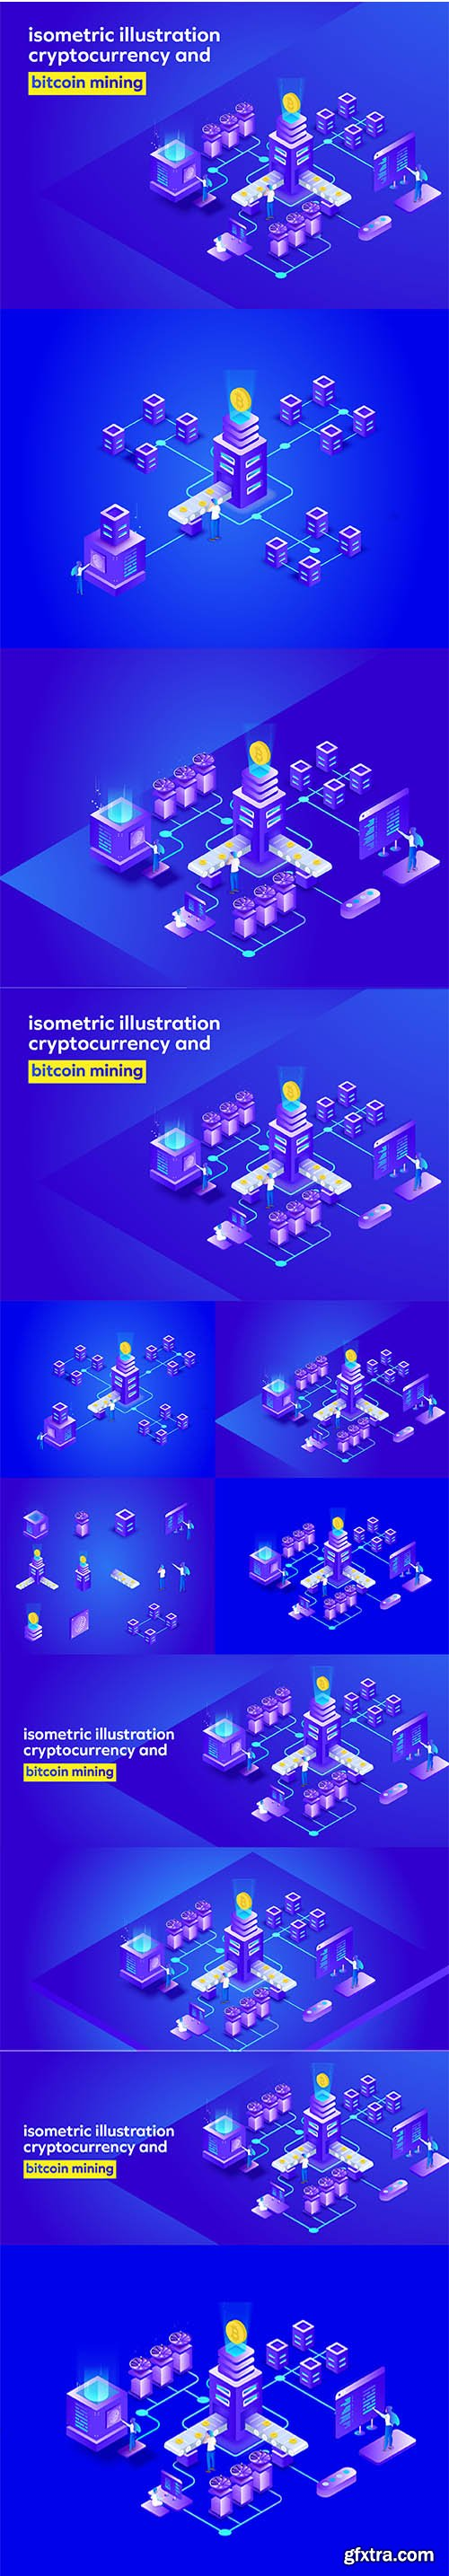 bitcoin mining isometric illustration